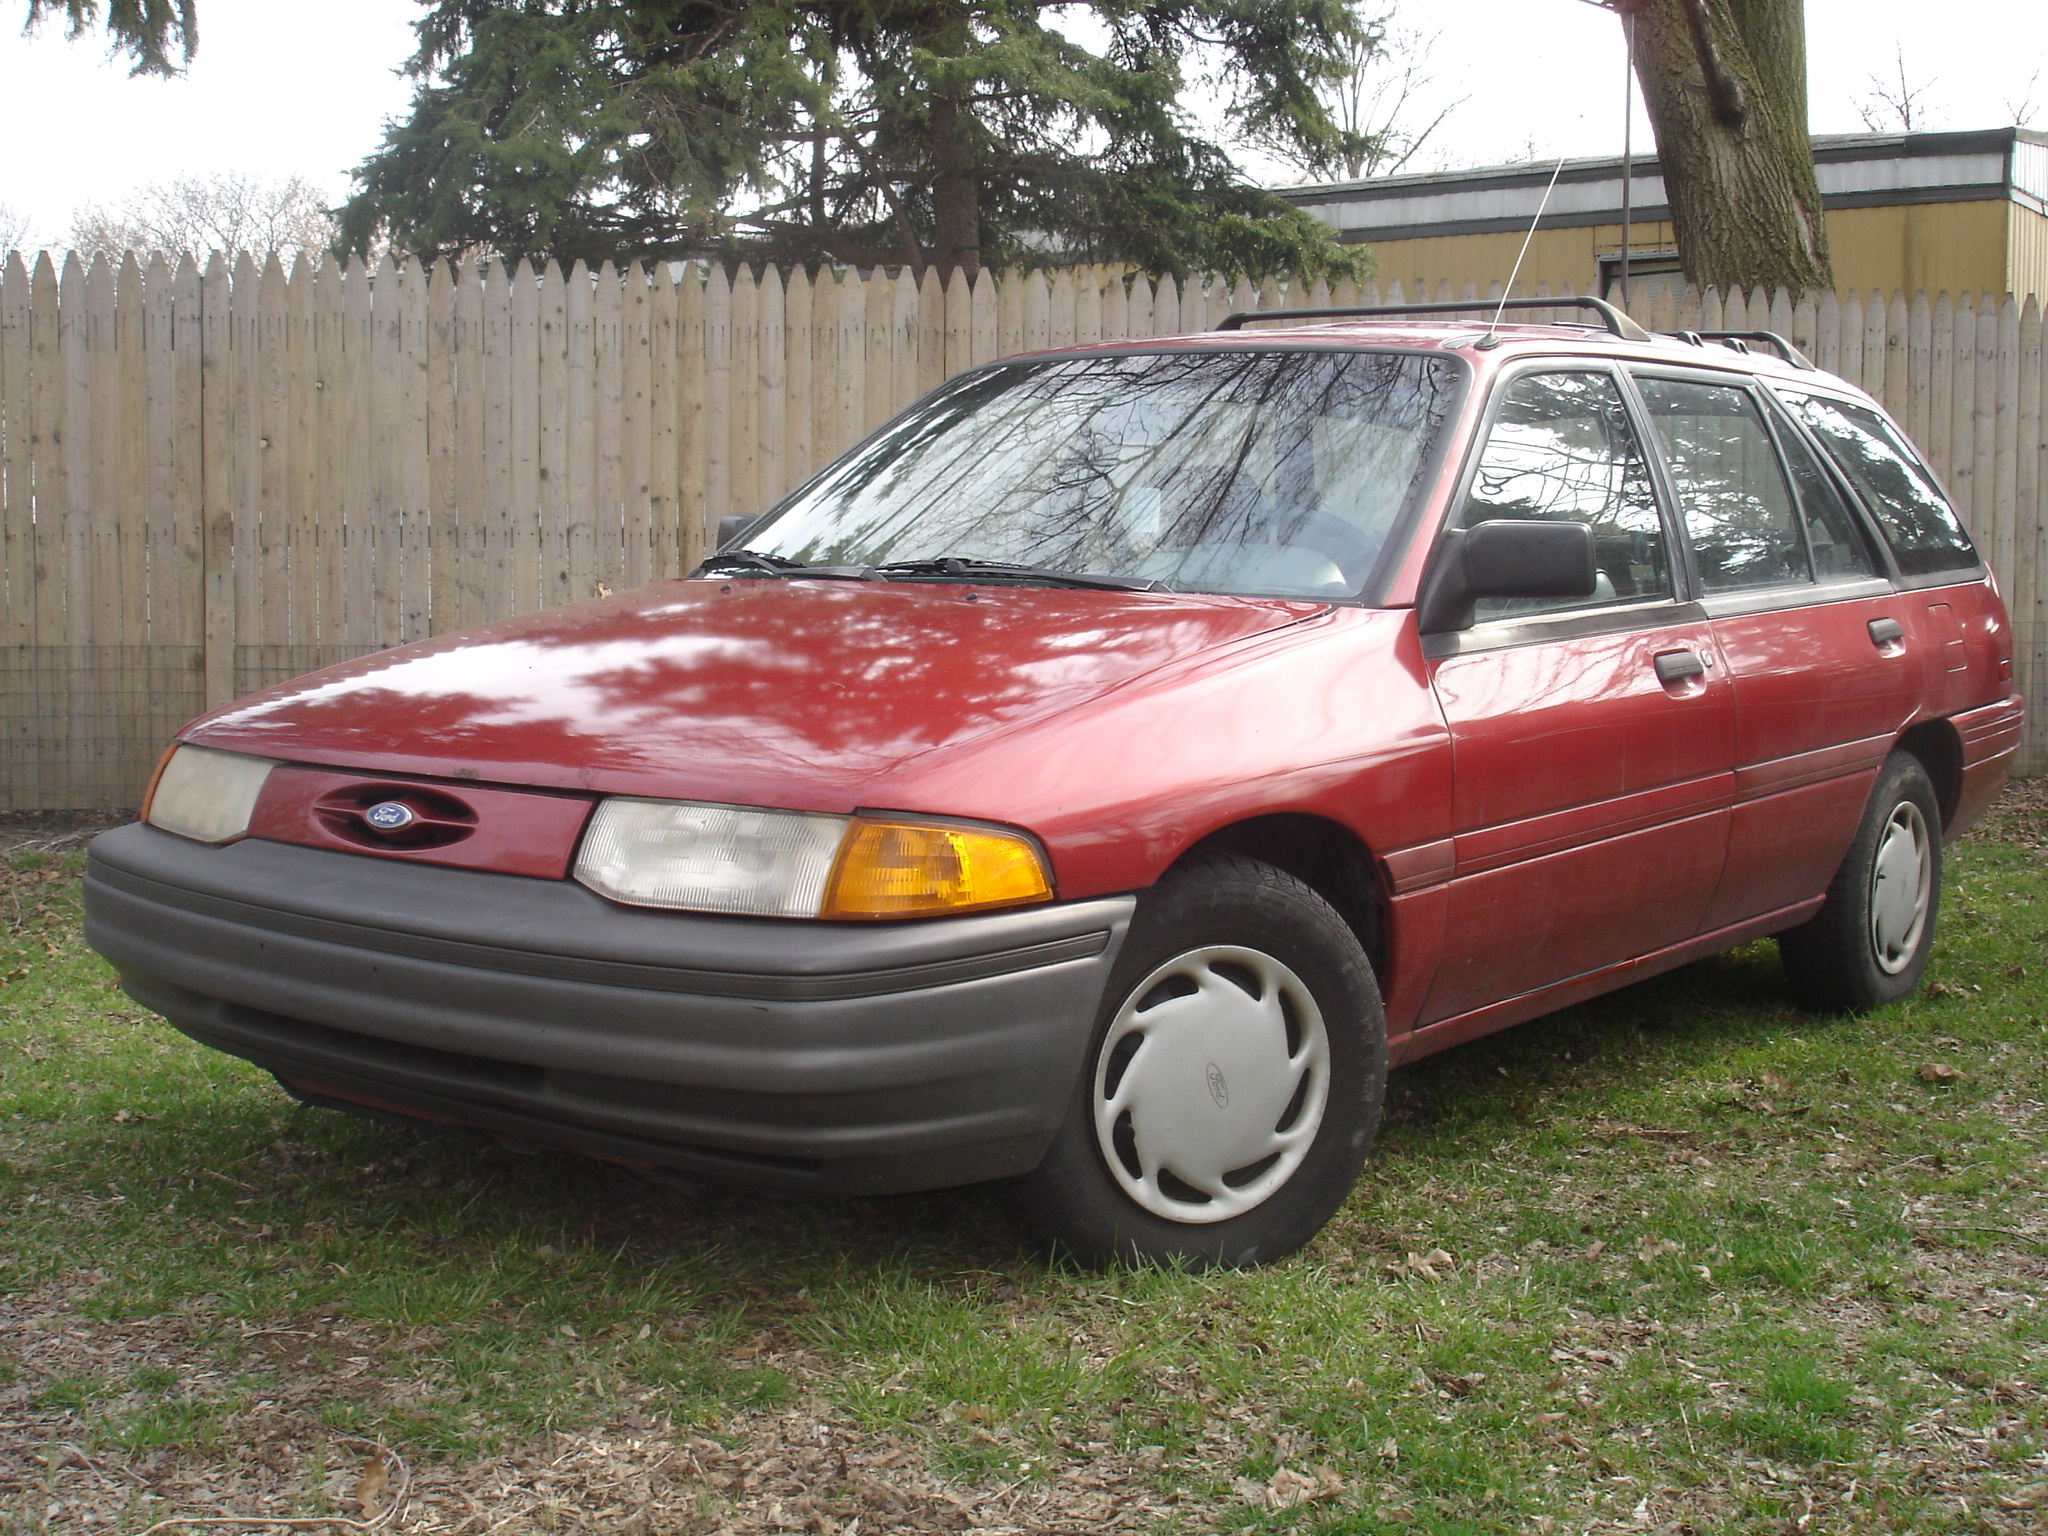 Craigslist Cars North Chicago